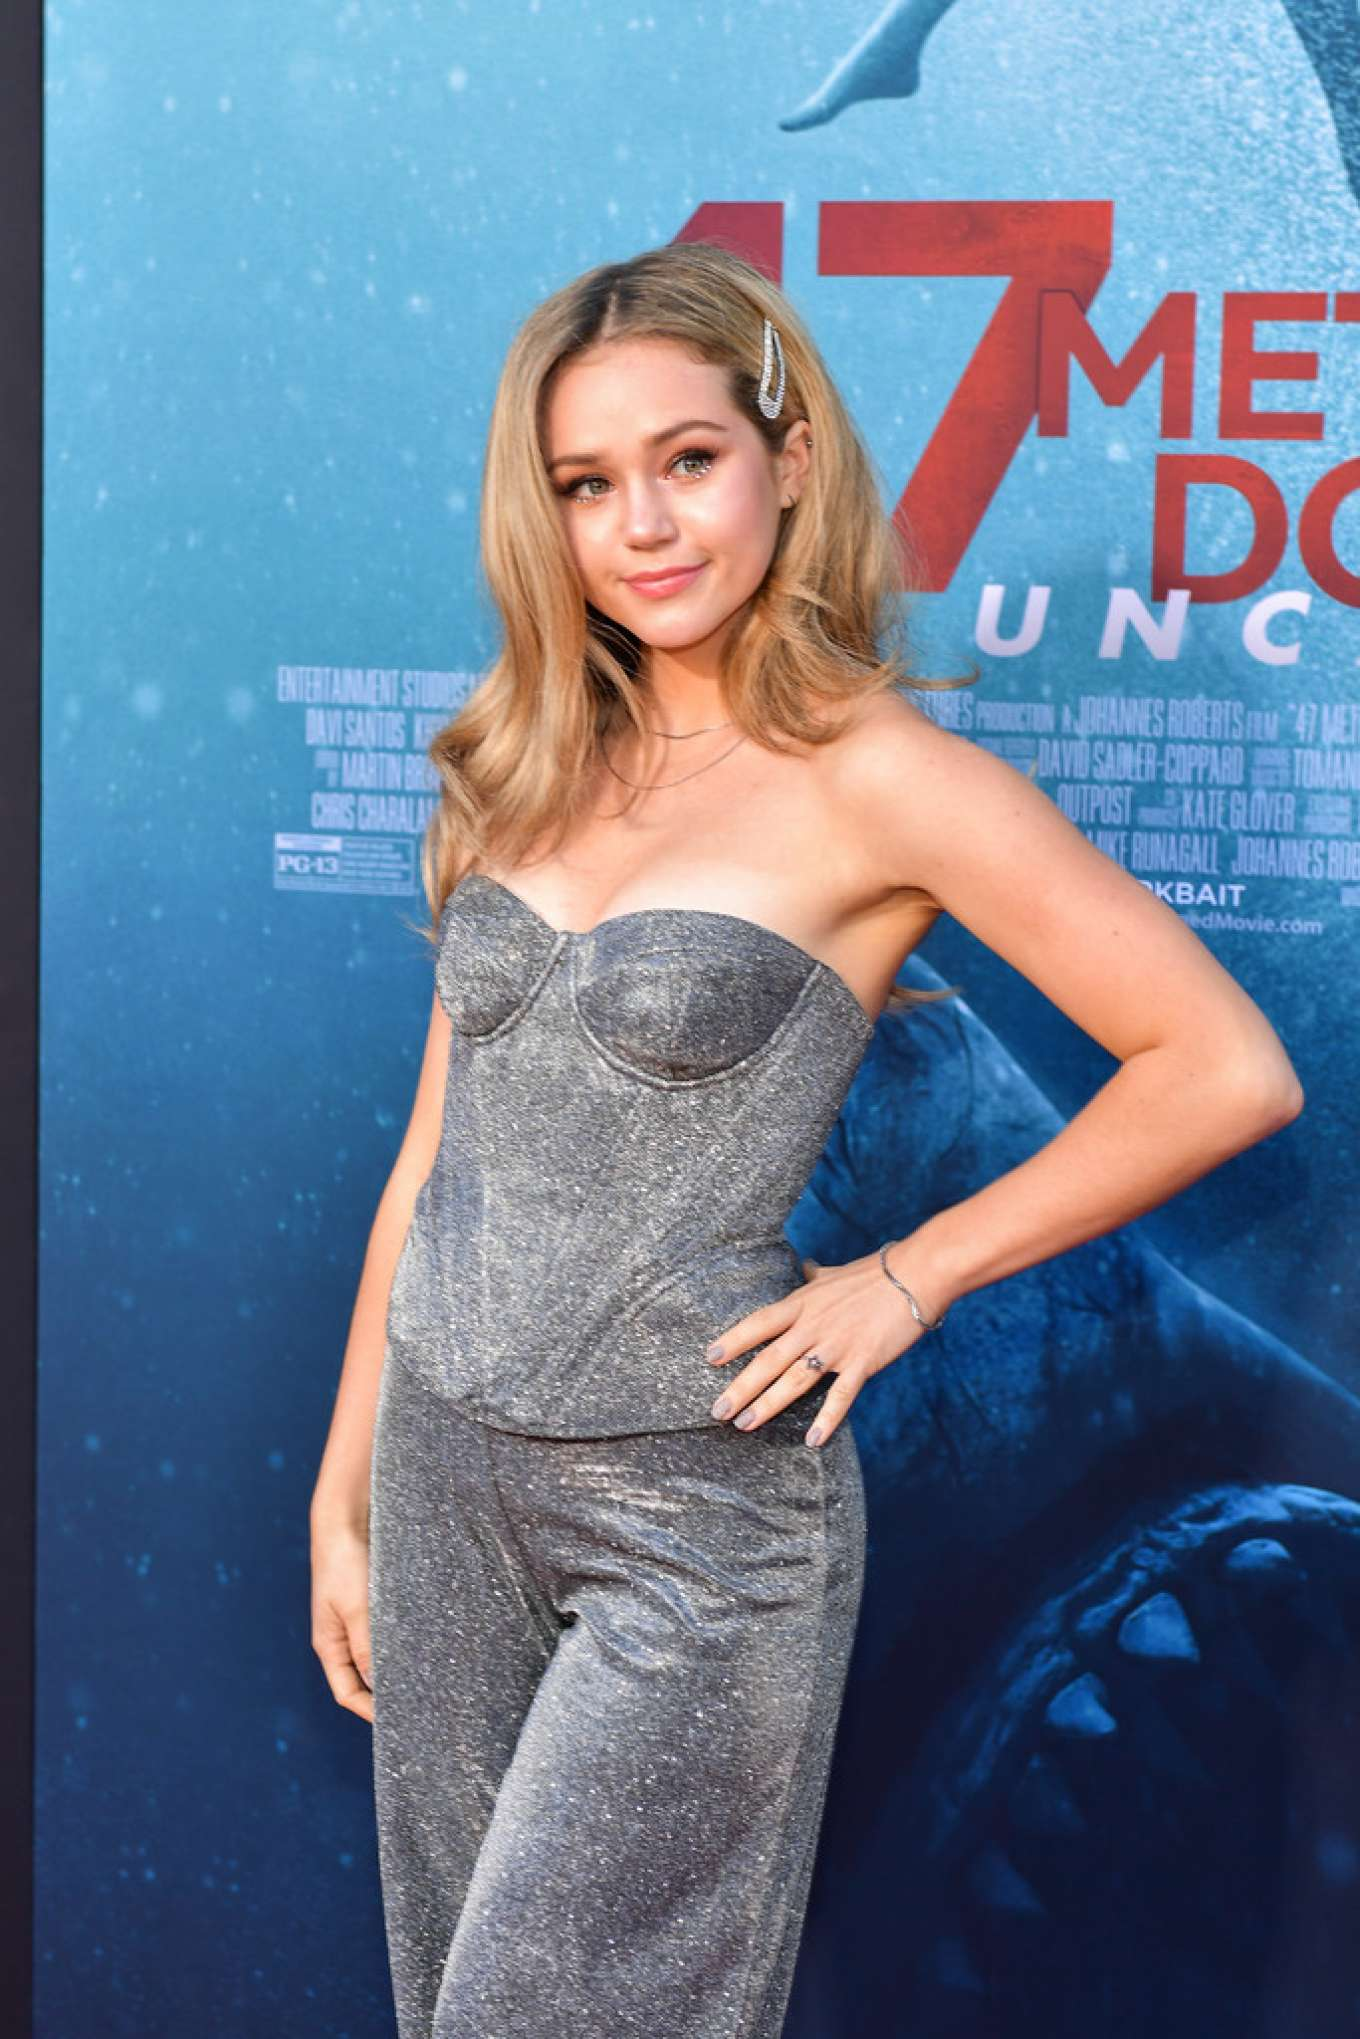 Brec Bassinger - '47 Meters Down Uncaged' premiere photocall in Westwood